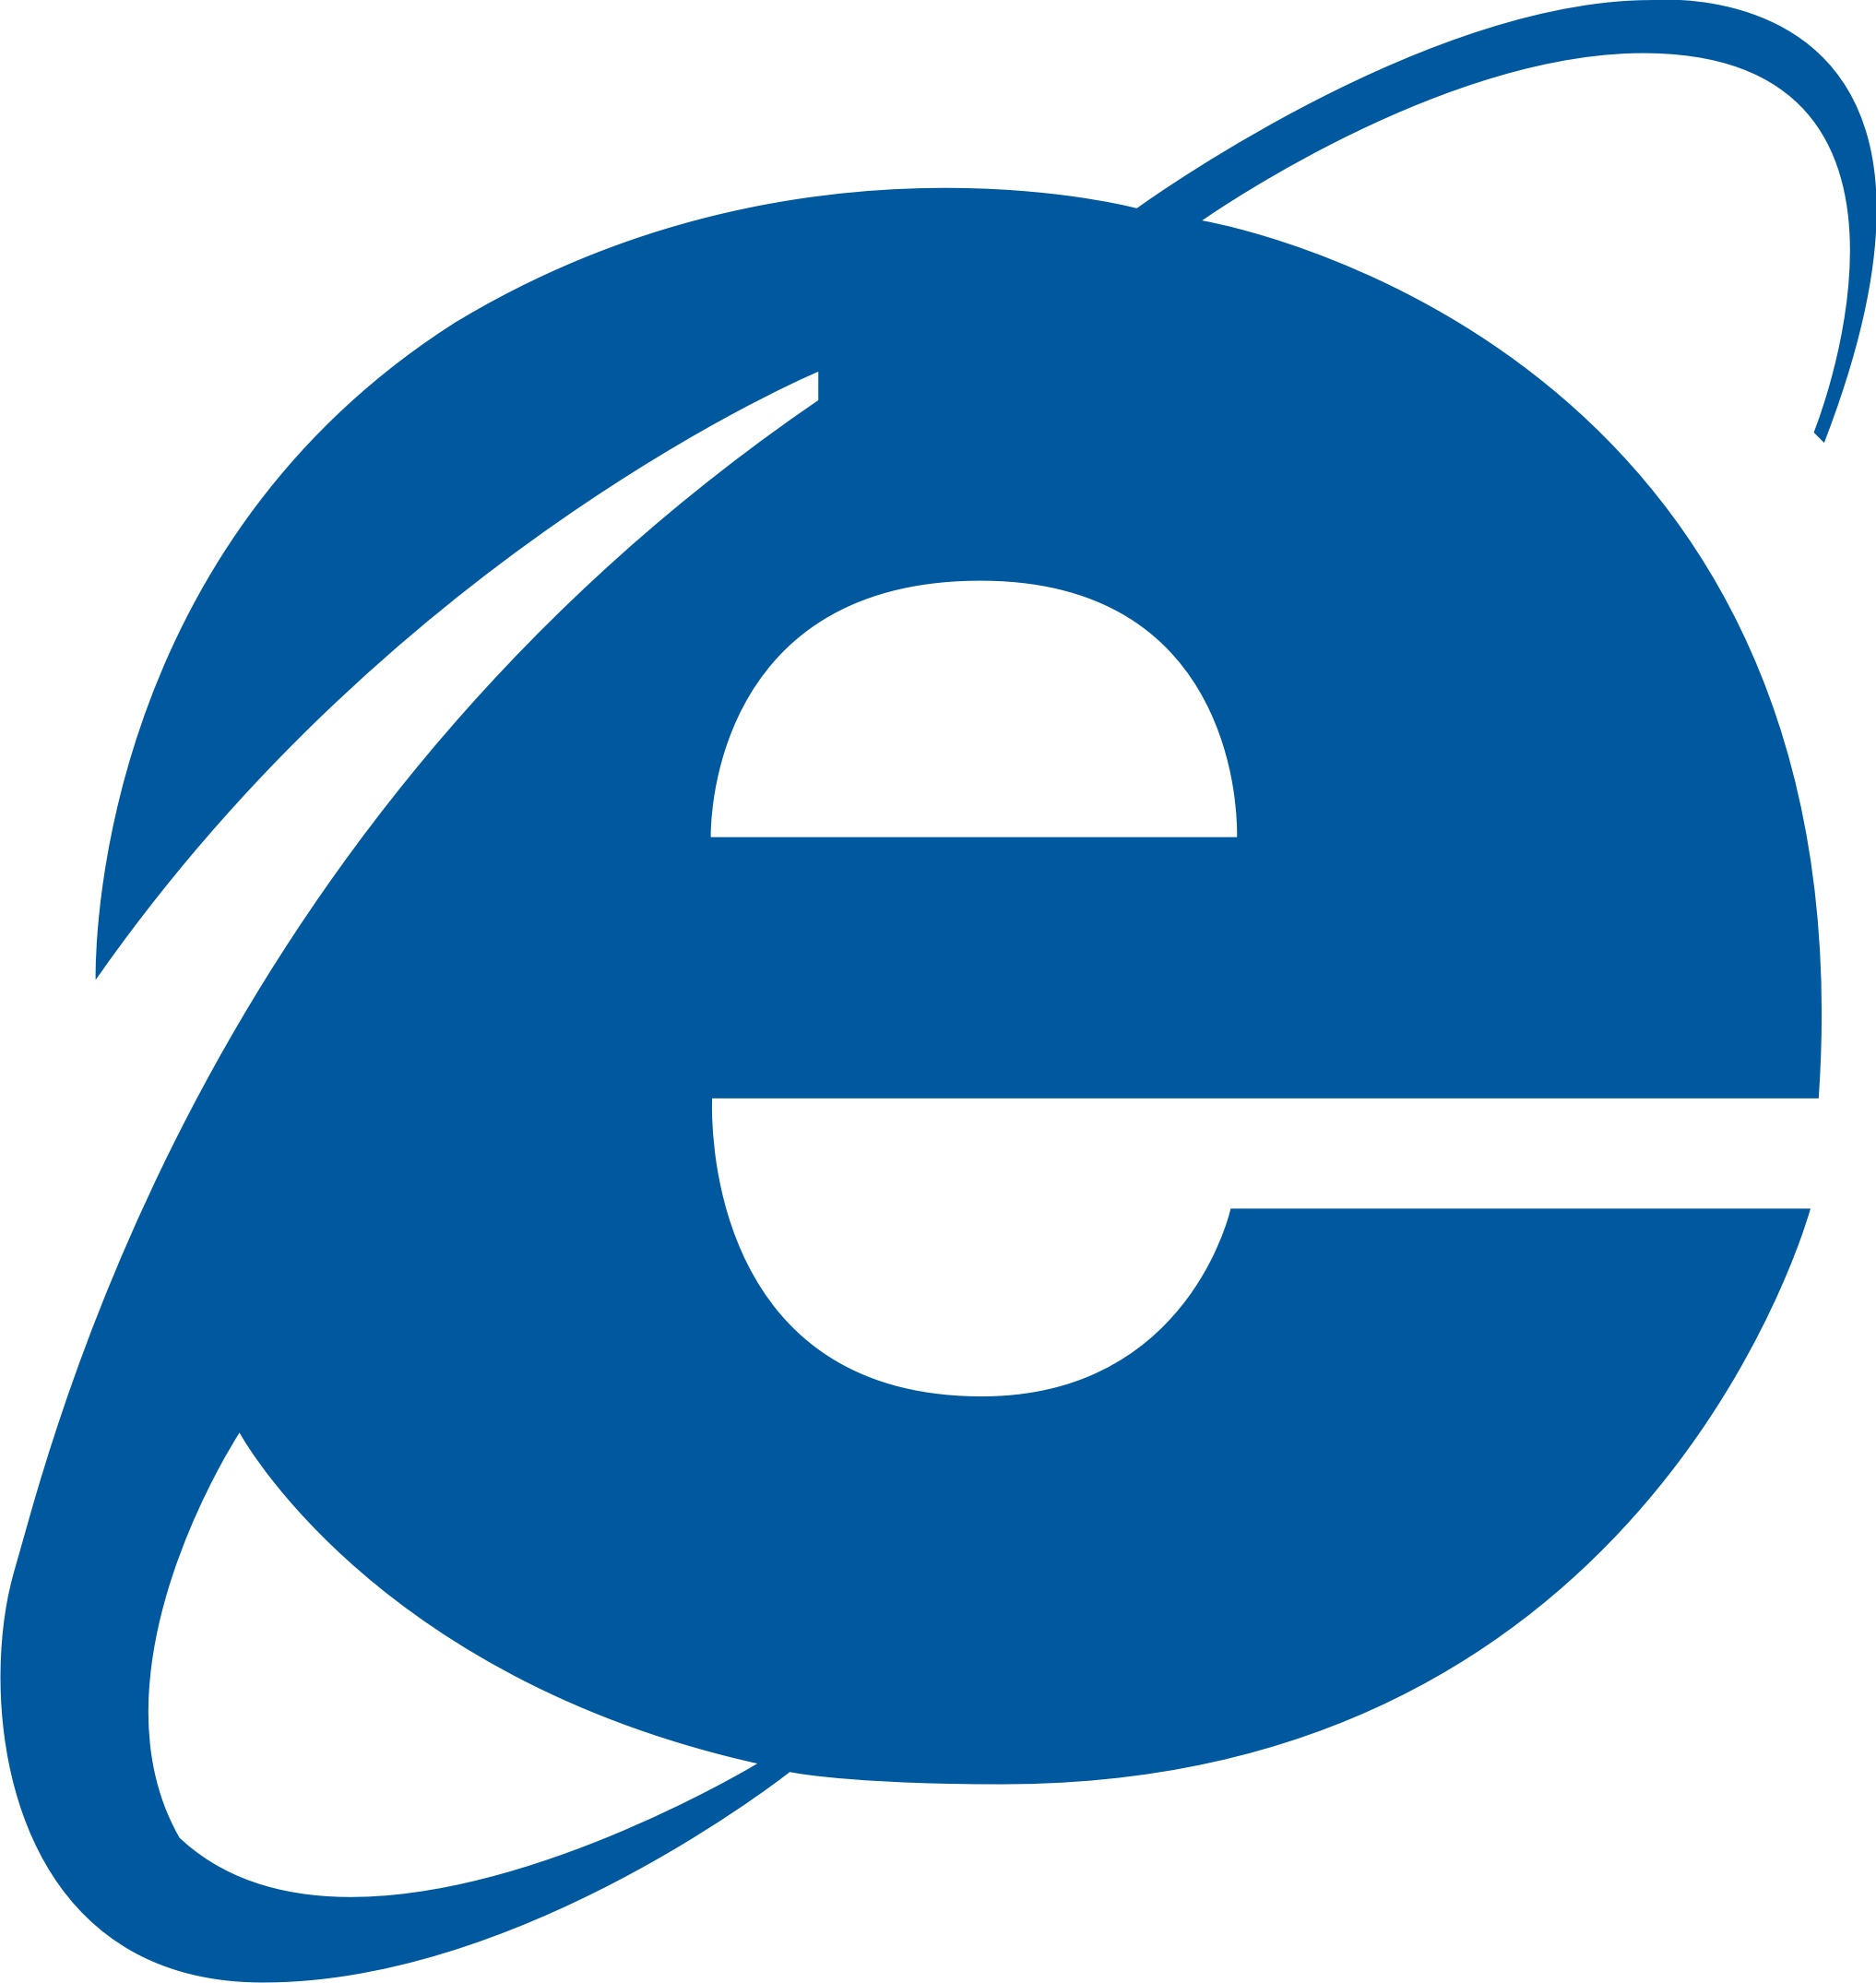 New Vulnerability Found in Internet Explorer.